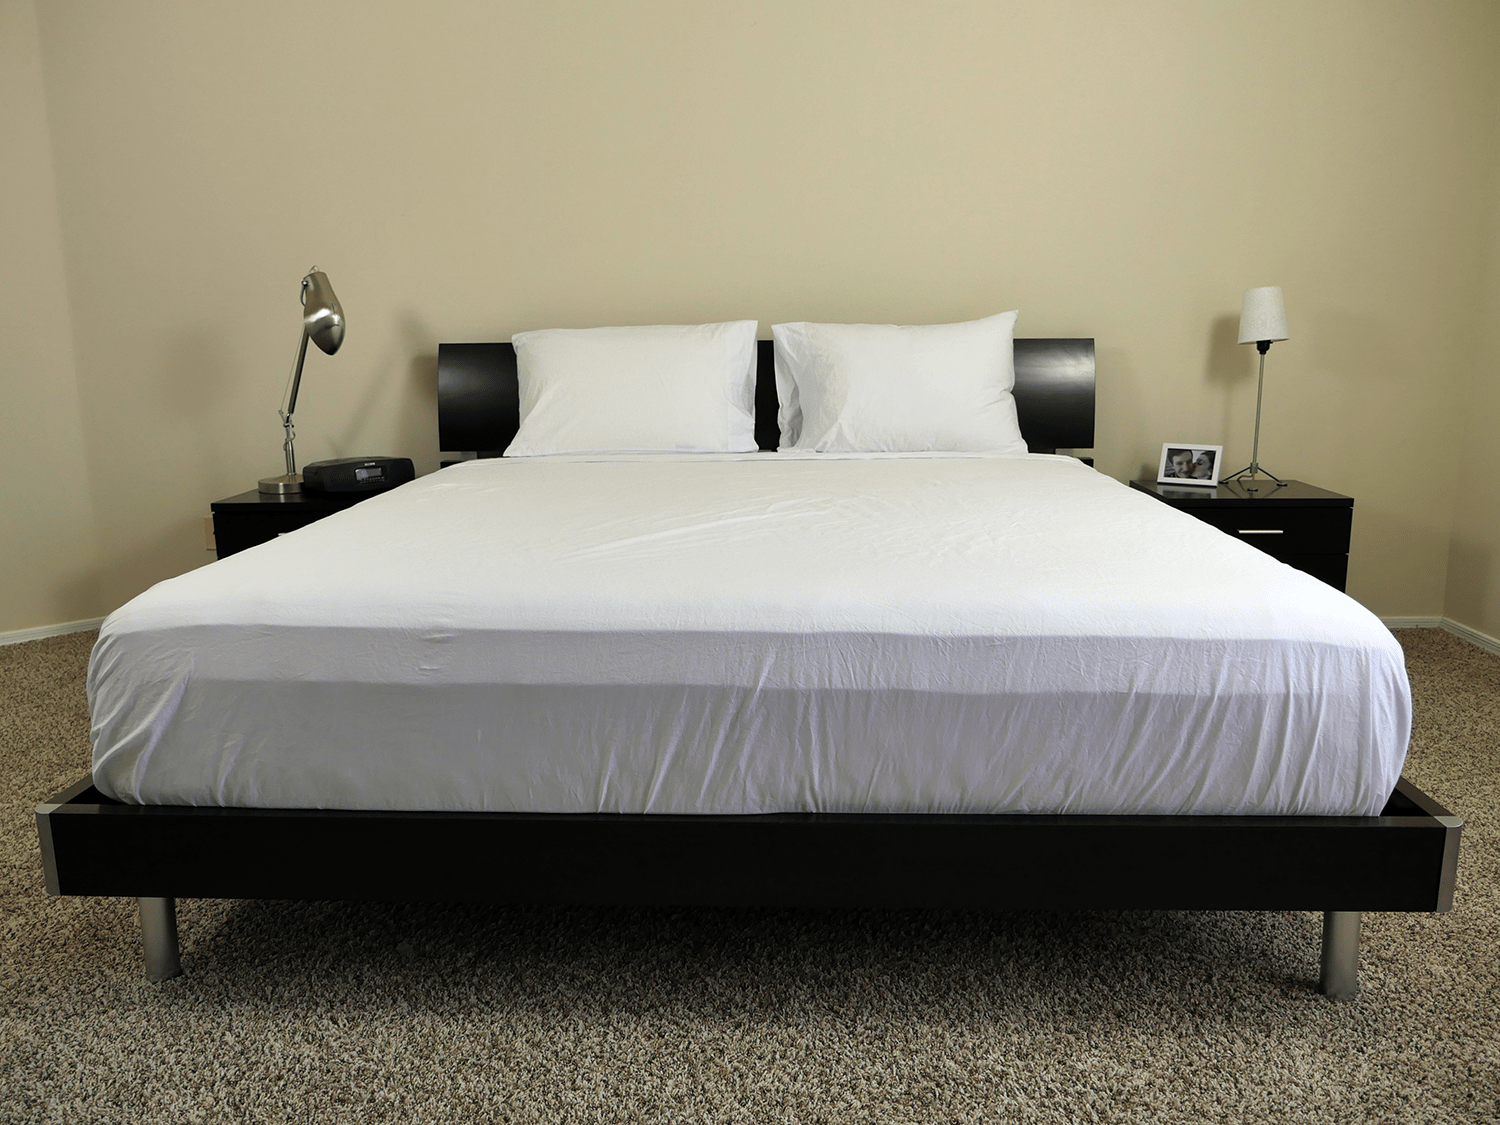 Authenticity 50 sheets on a King size mattress